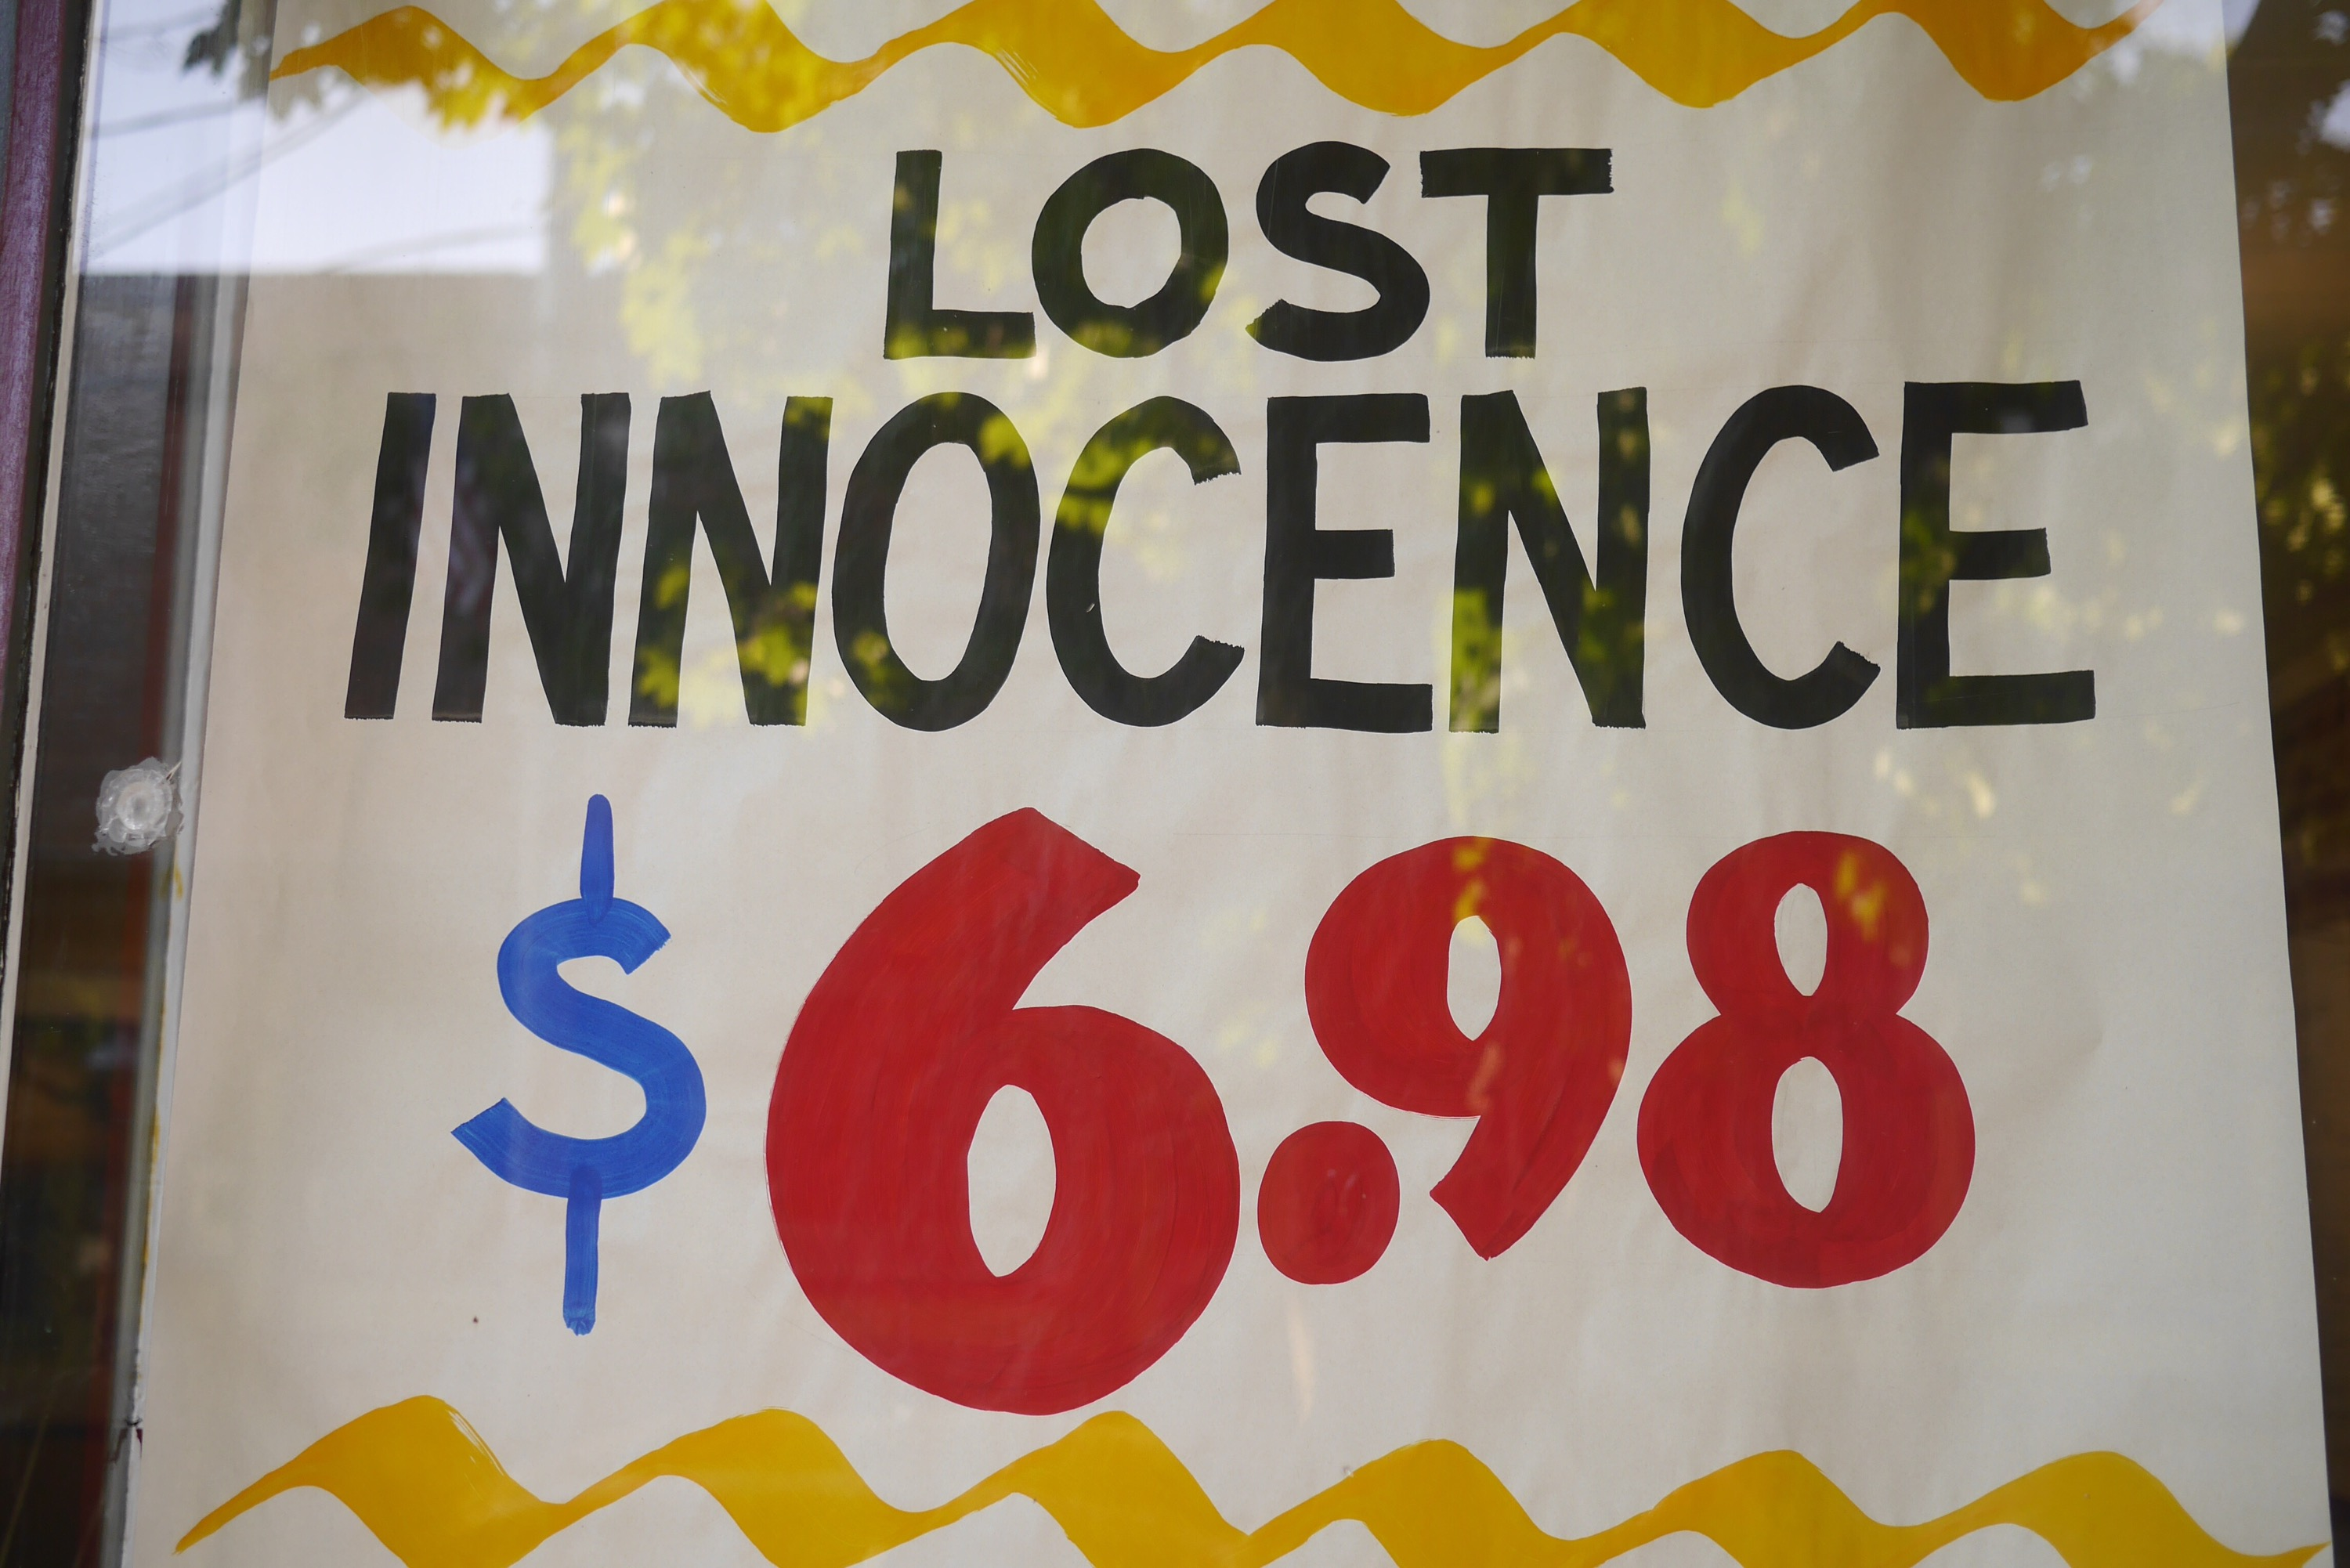 Sign: Lost Innocence, $6.98